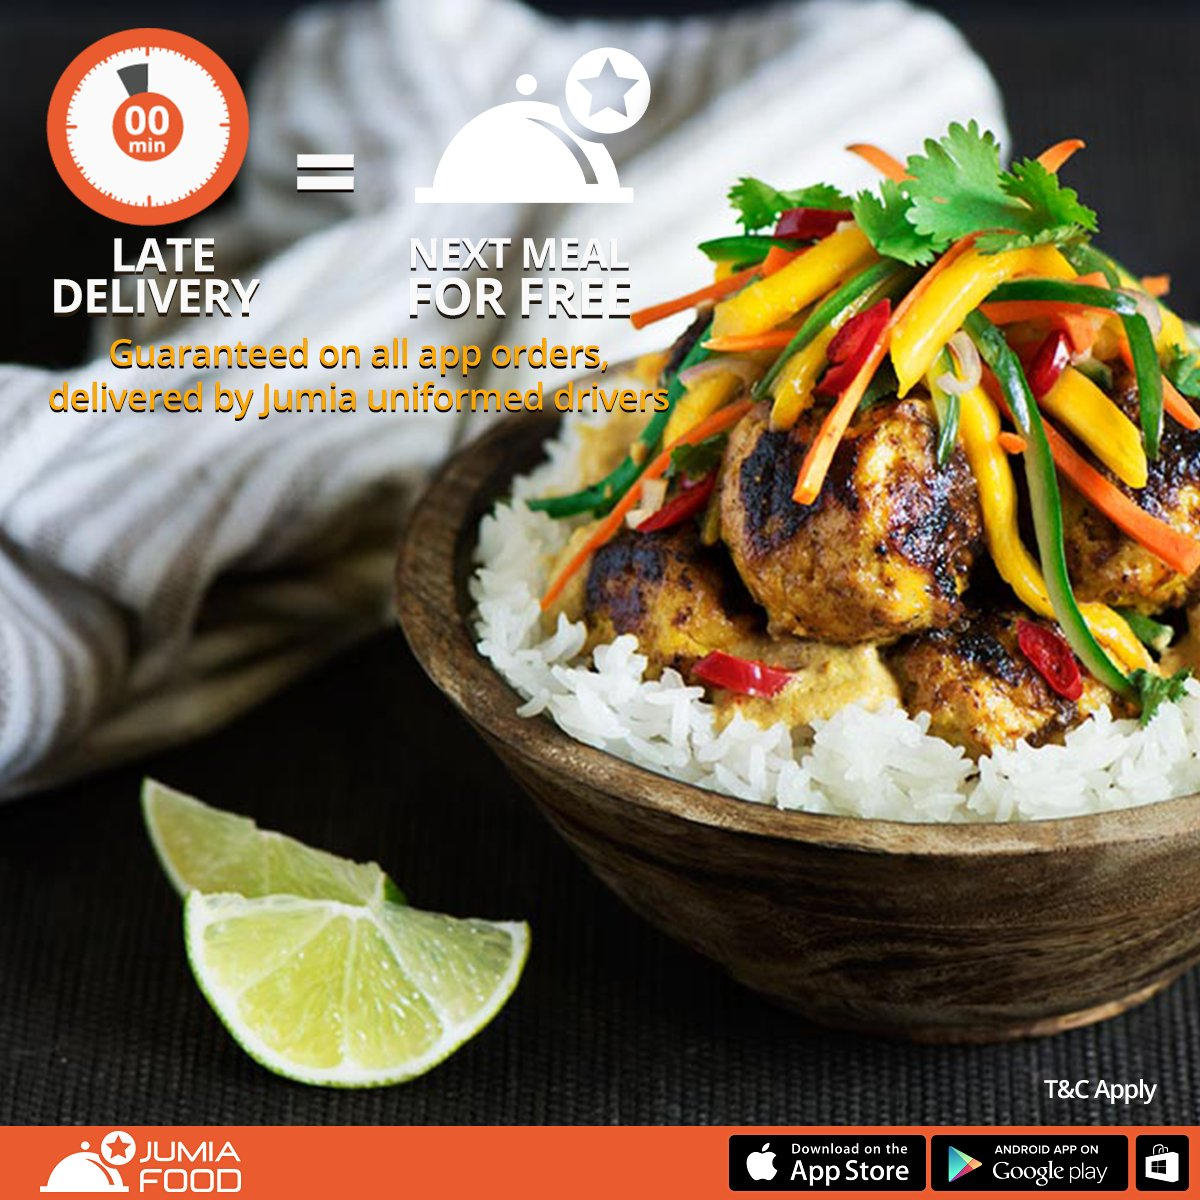 Jumia food nigeria on twitter we value your time late delivery jumia food nigeria on twitter we value your time late delivery free meal voucher on jumia food app orders only t c apply forumfinder Image collections